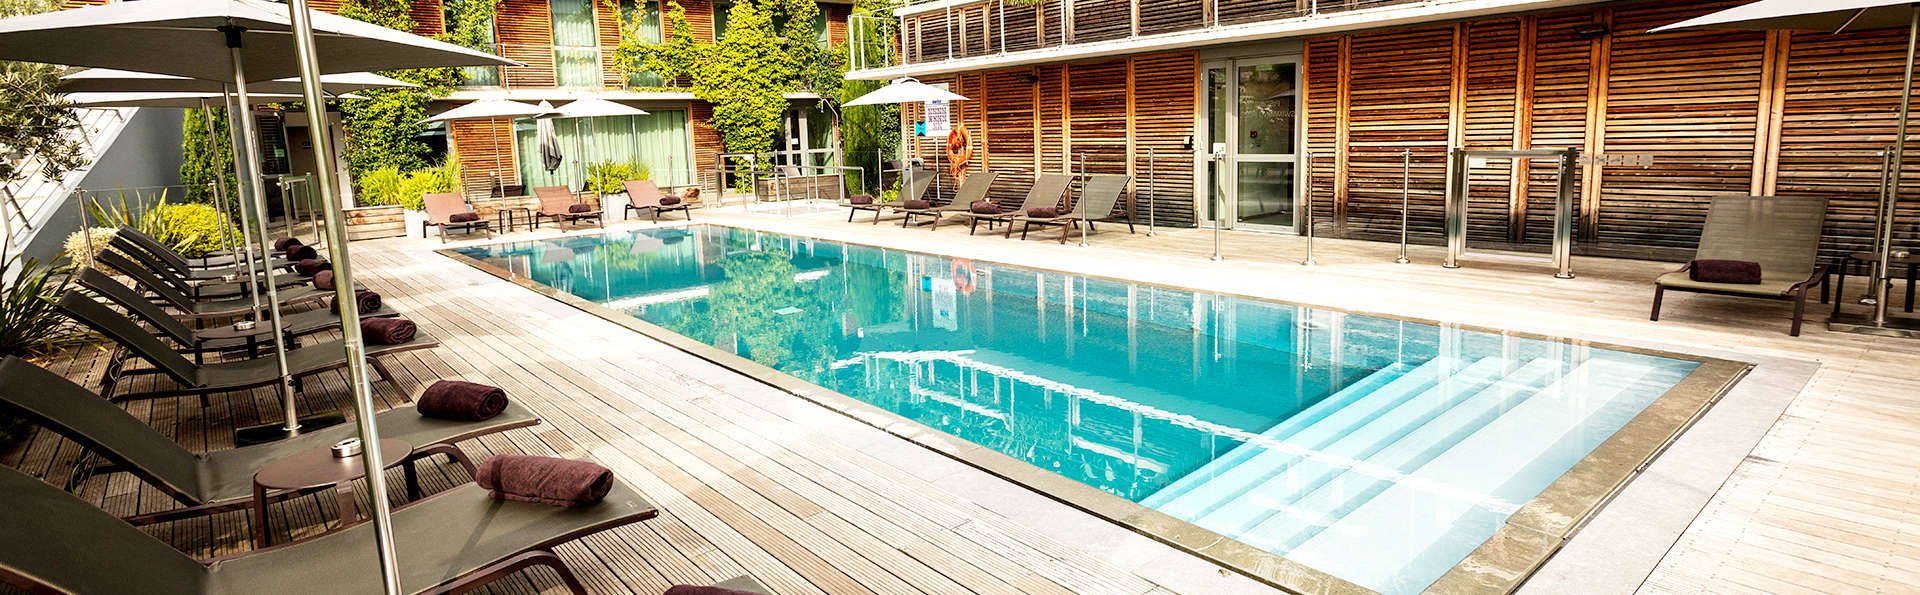 Courtyard by Marriott Montpellier - Edit_Pool.jpg